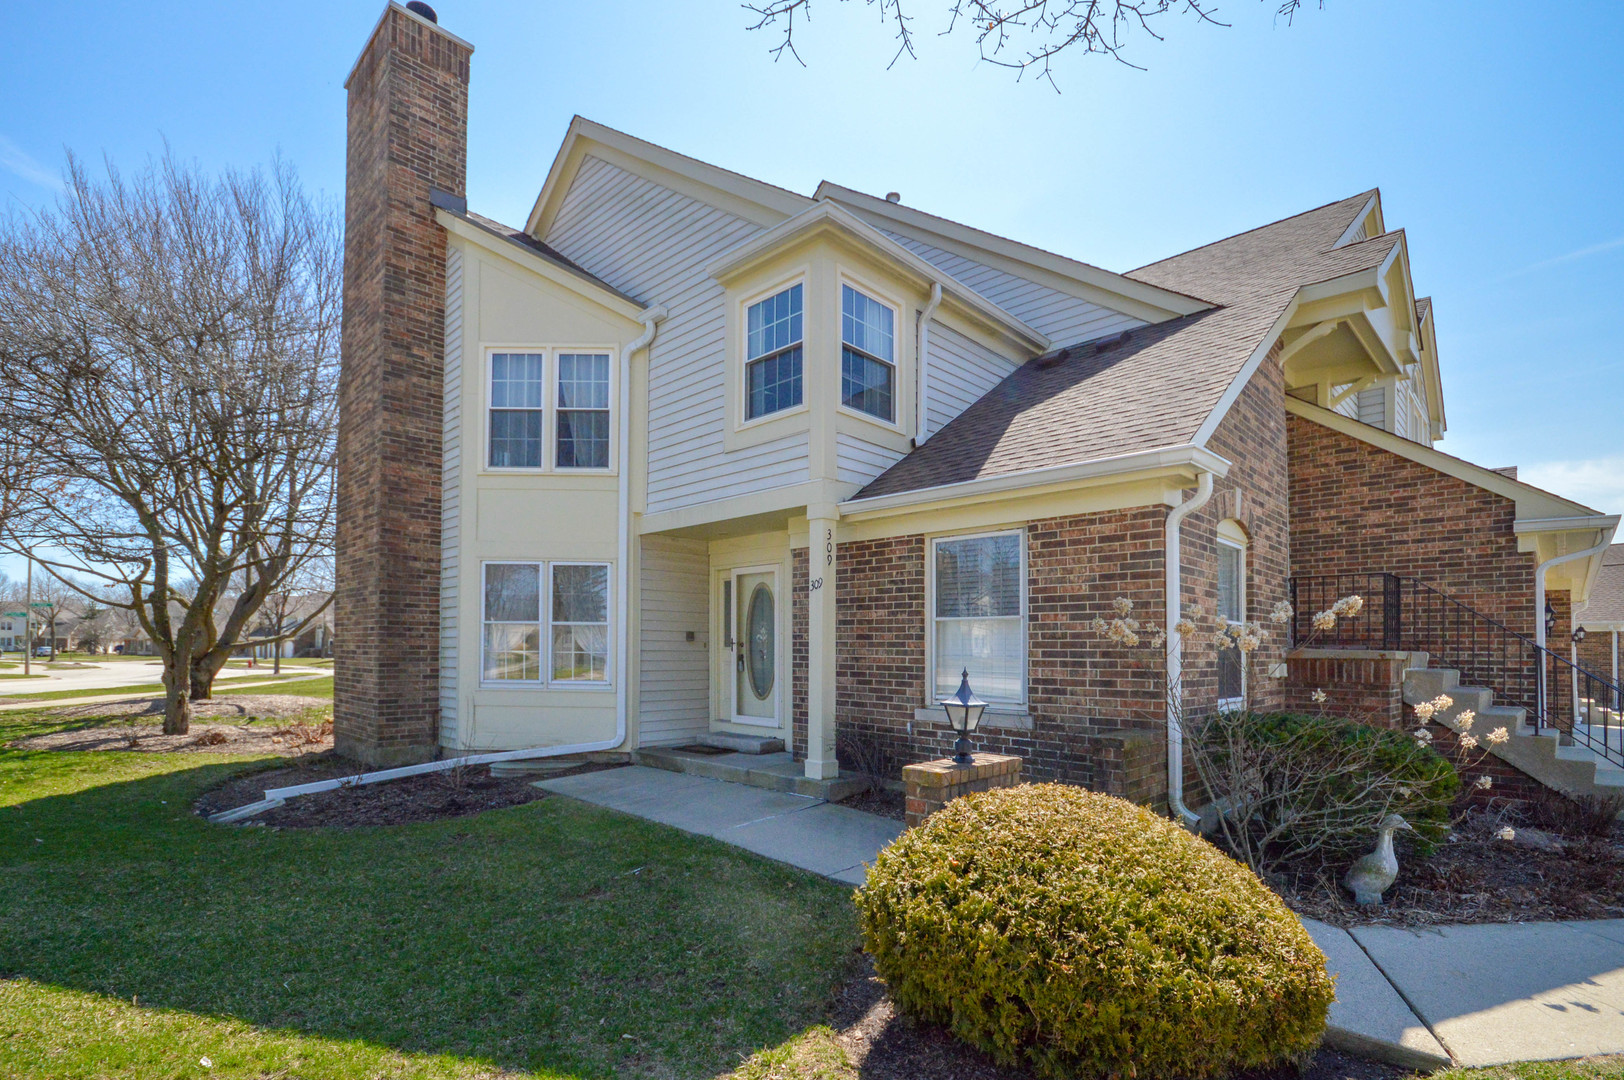 309 Willow Parkway, Buffalo Grove in Lake County, IL 60089 Home for Sale